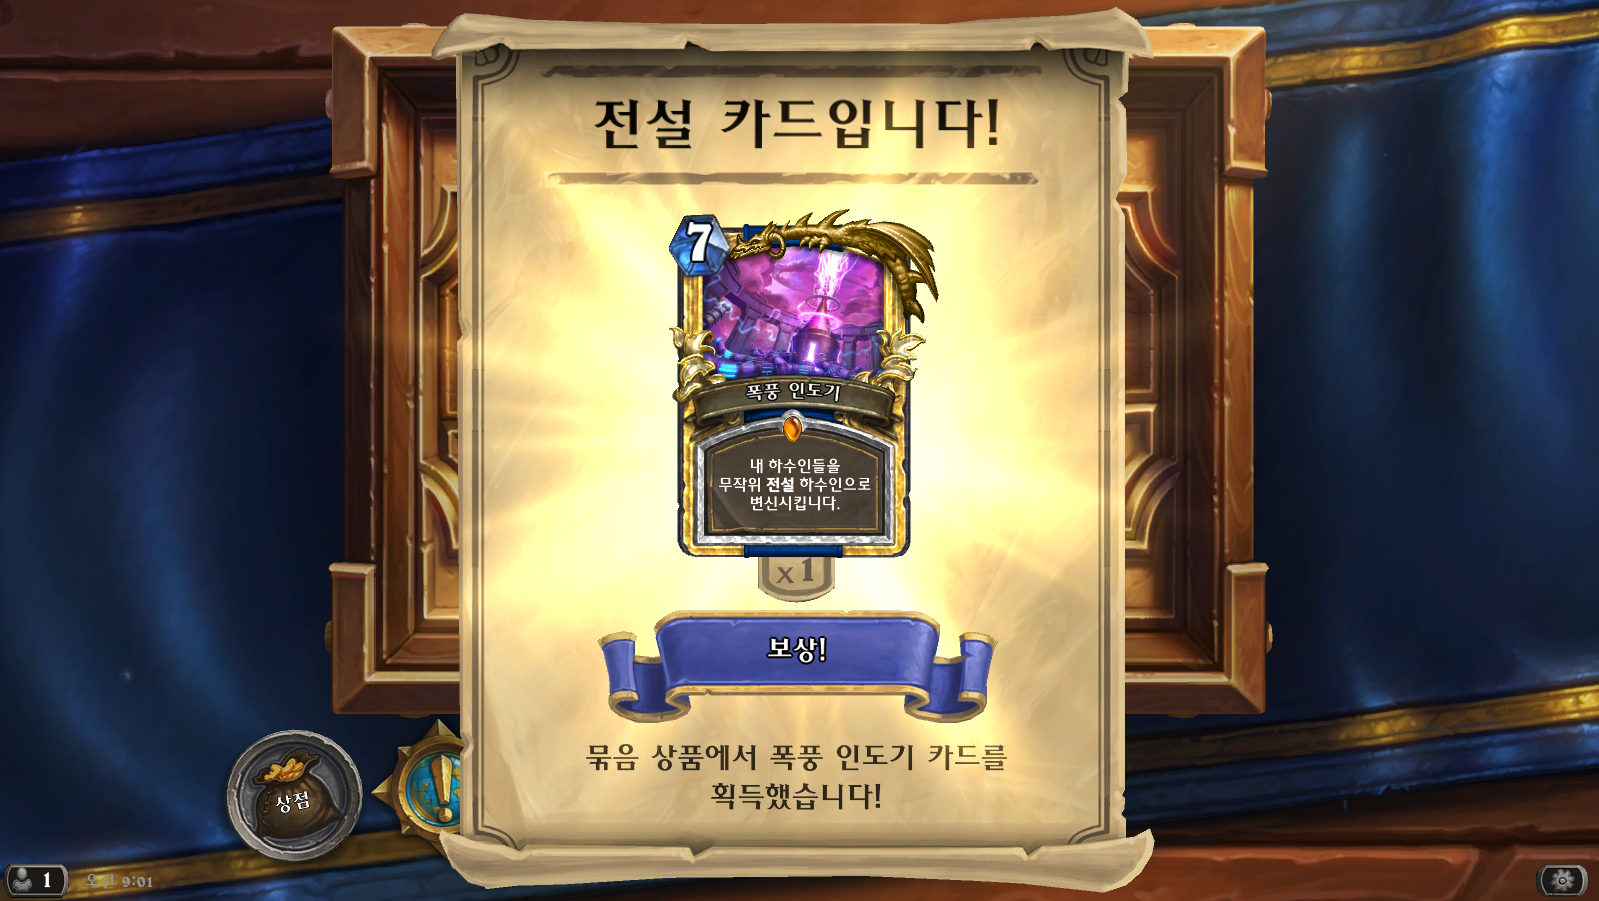 Hearthstone Screenshot 08-08-18 09.01.53.png